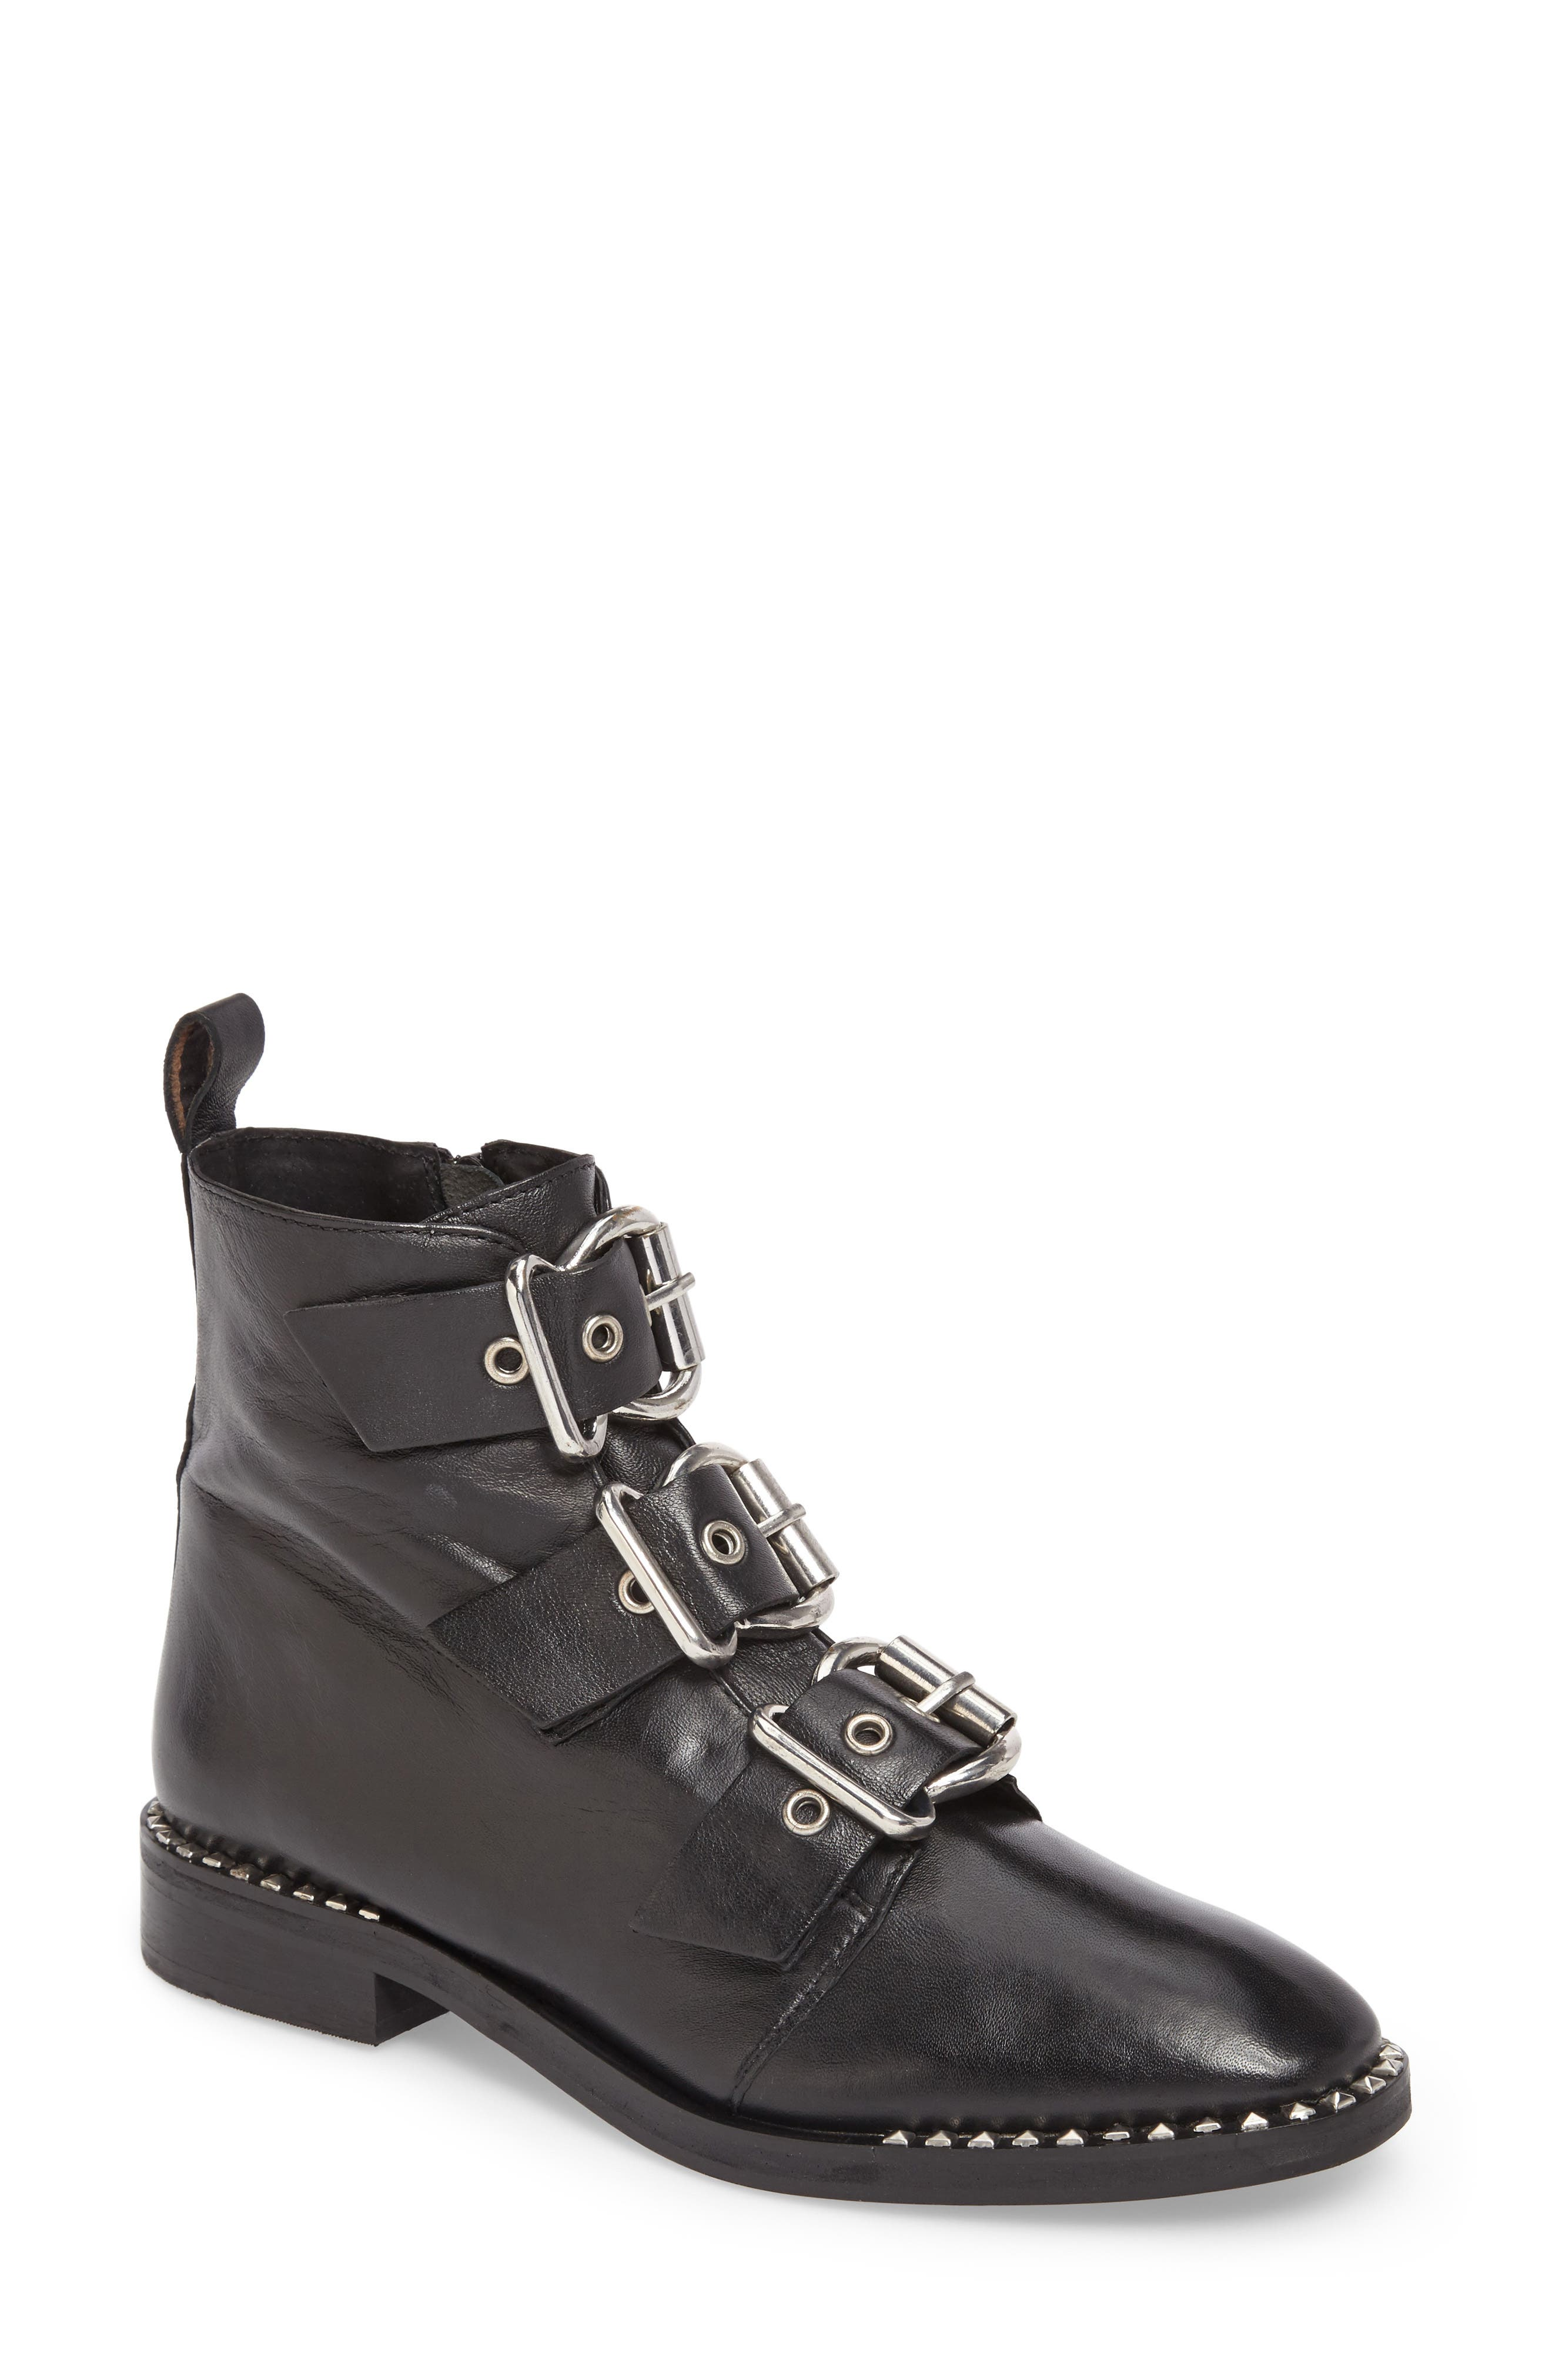 Alfie Buckle Ankle Boot,                             Main thumbnail 1, color,                             001